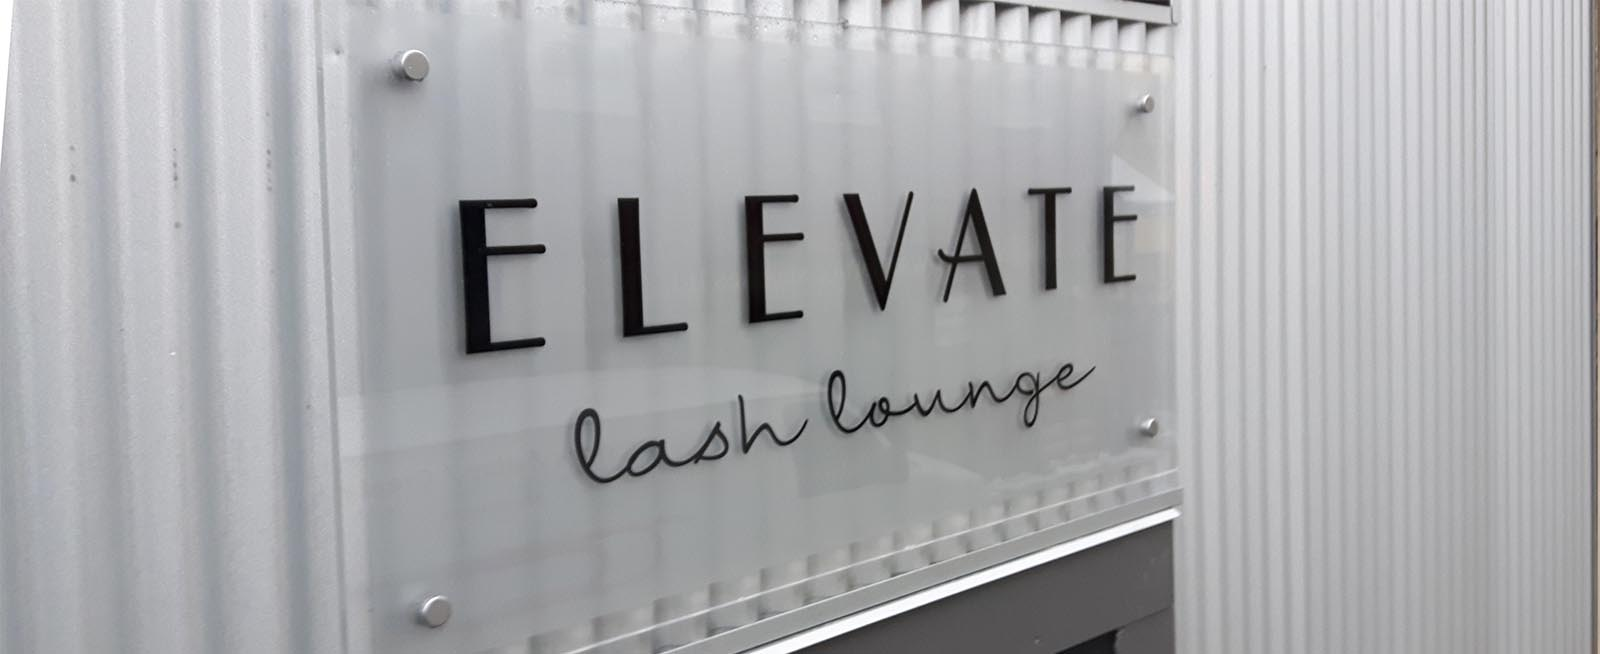 Elevate Lash- Slider image